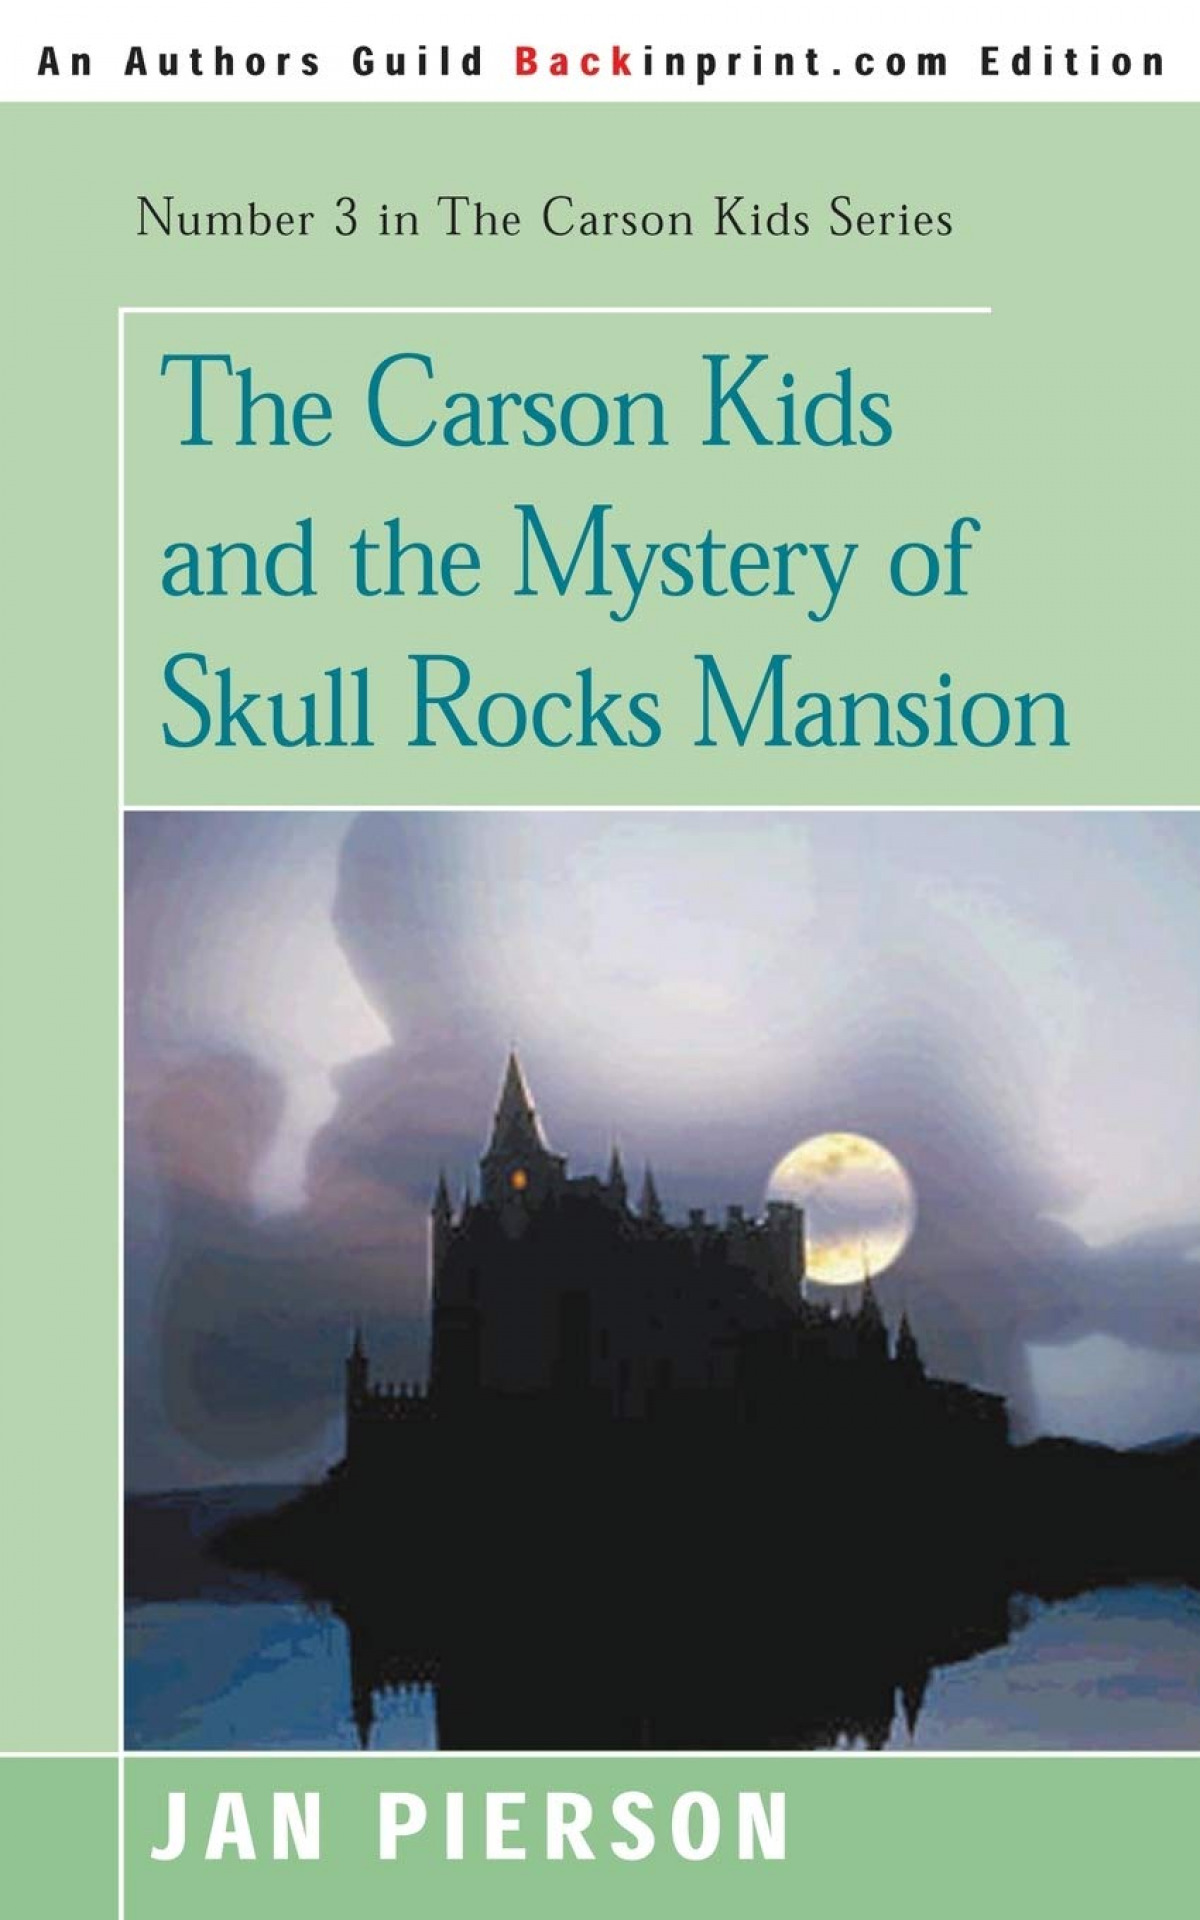 The Carson Kids and the Mystery of Skull Rocks Mansion